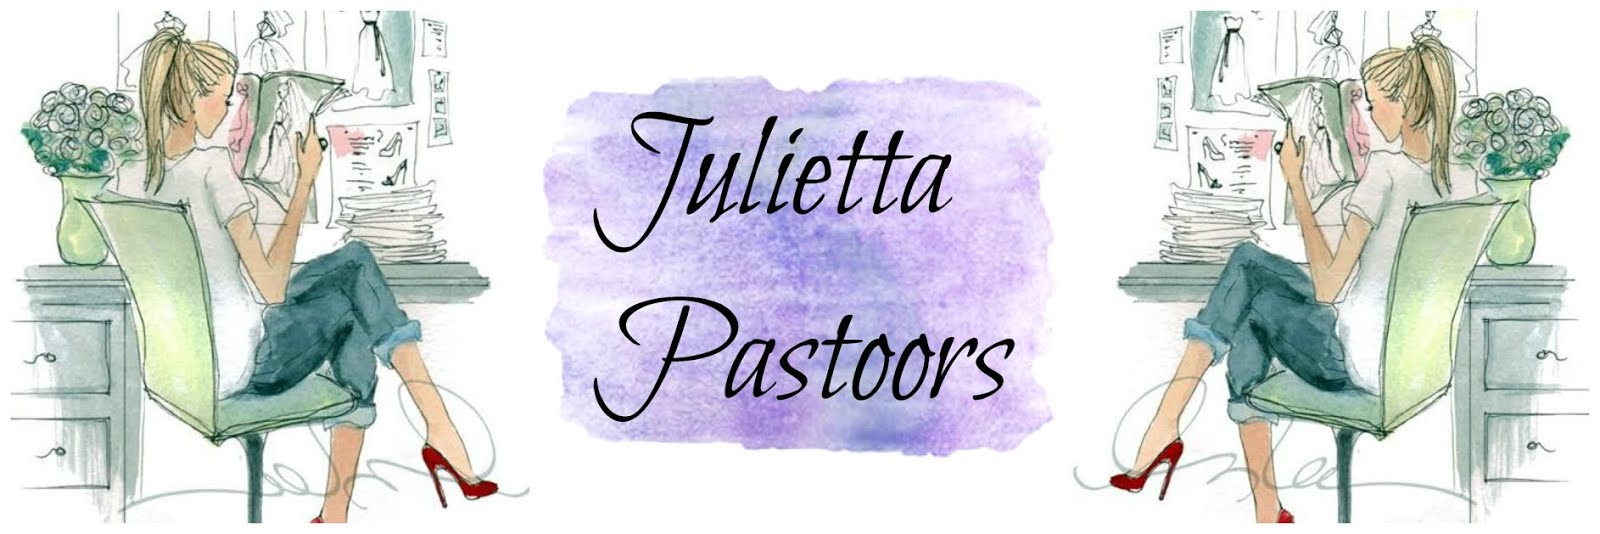 Julietta Pastoors